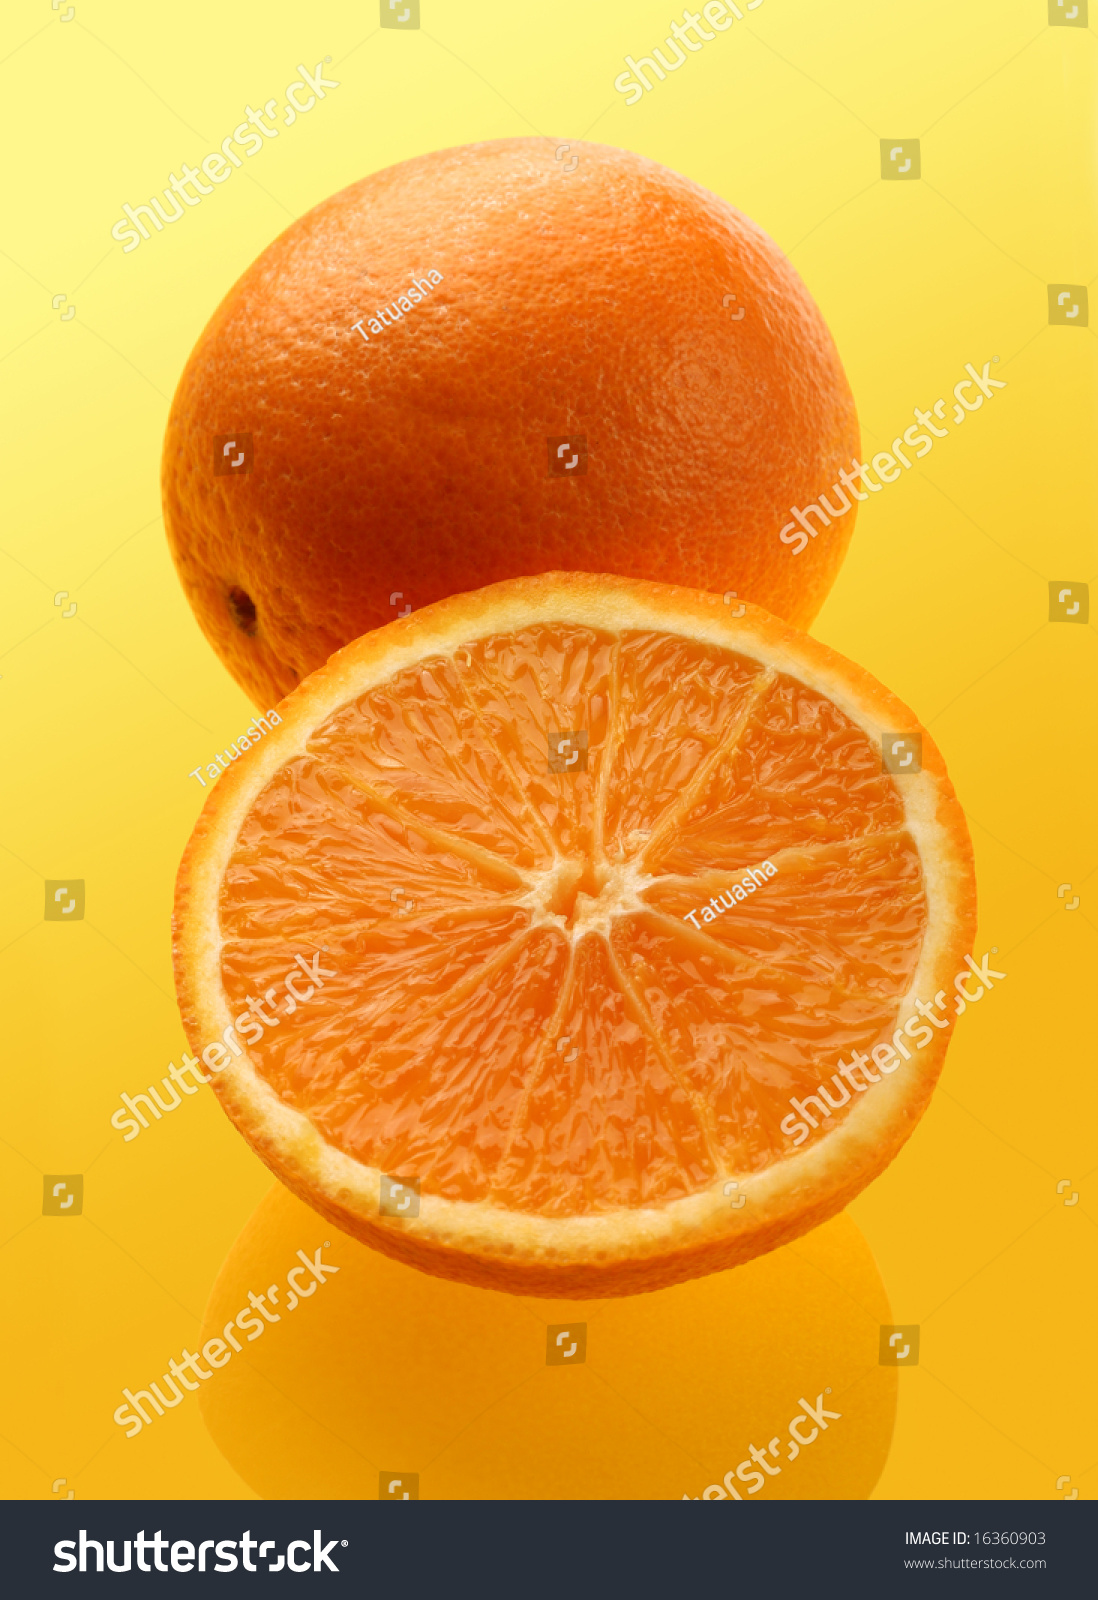 parts of an orange fruit diagram how do you draw a family tree part on yellow background stock photo